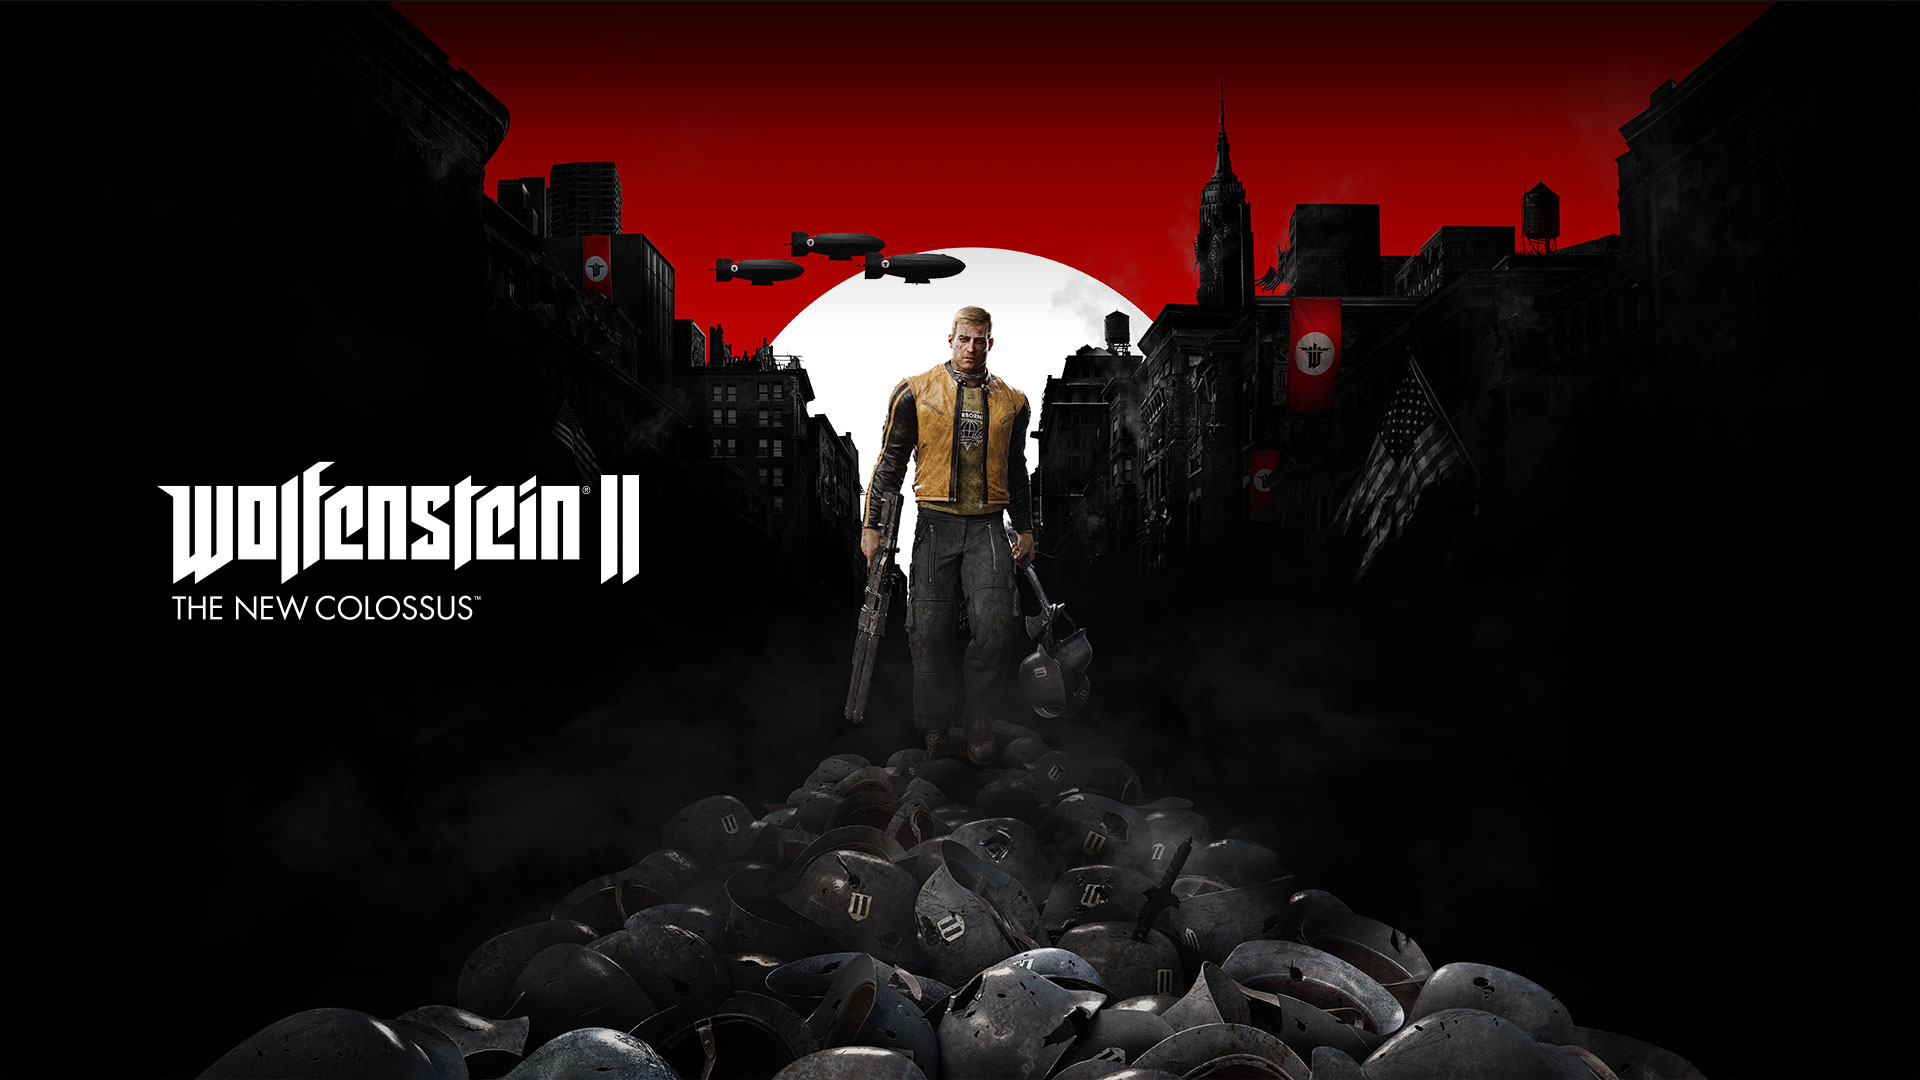 Wolfenstein II The New Colossus: BJ Blazkowicz holding a shotgun with a war-torn American town in the background